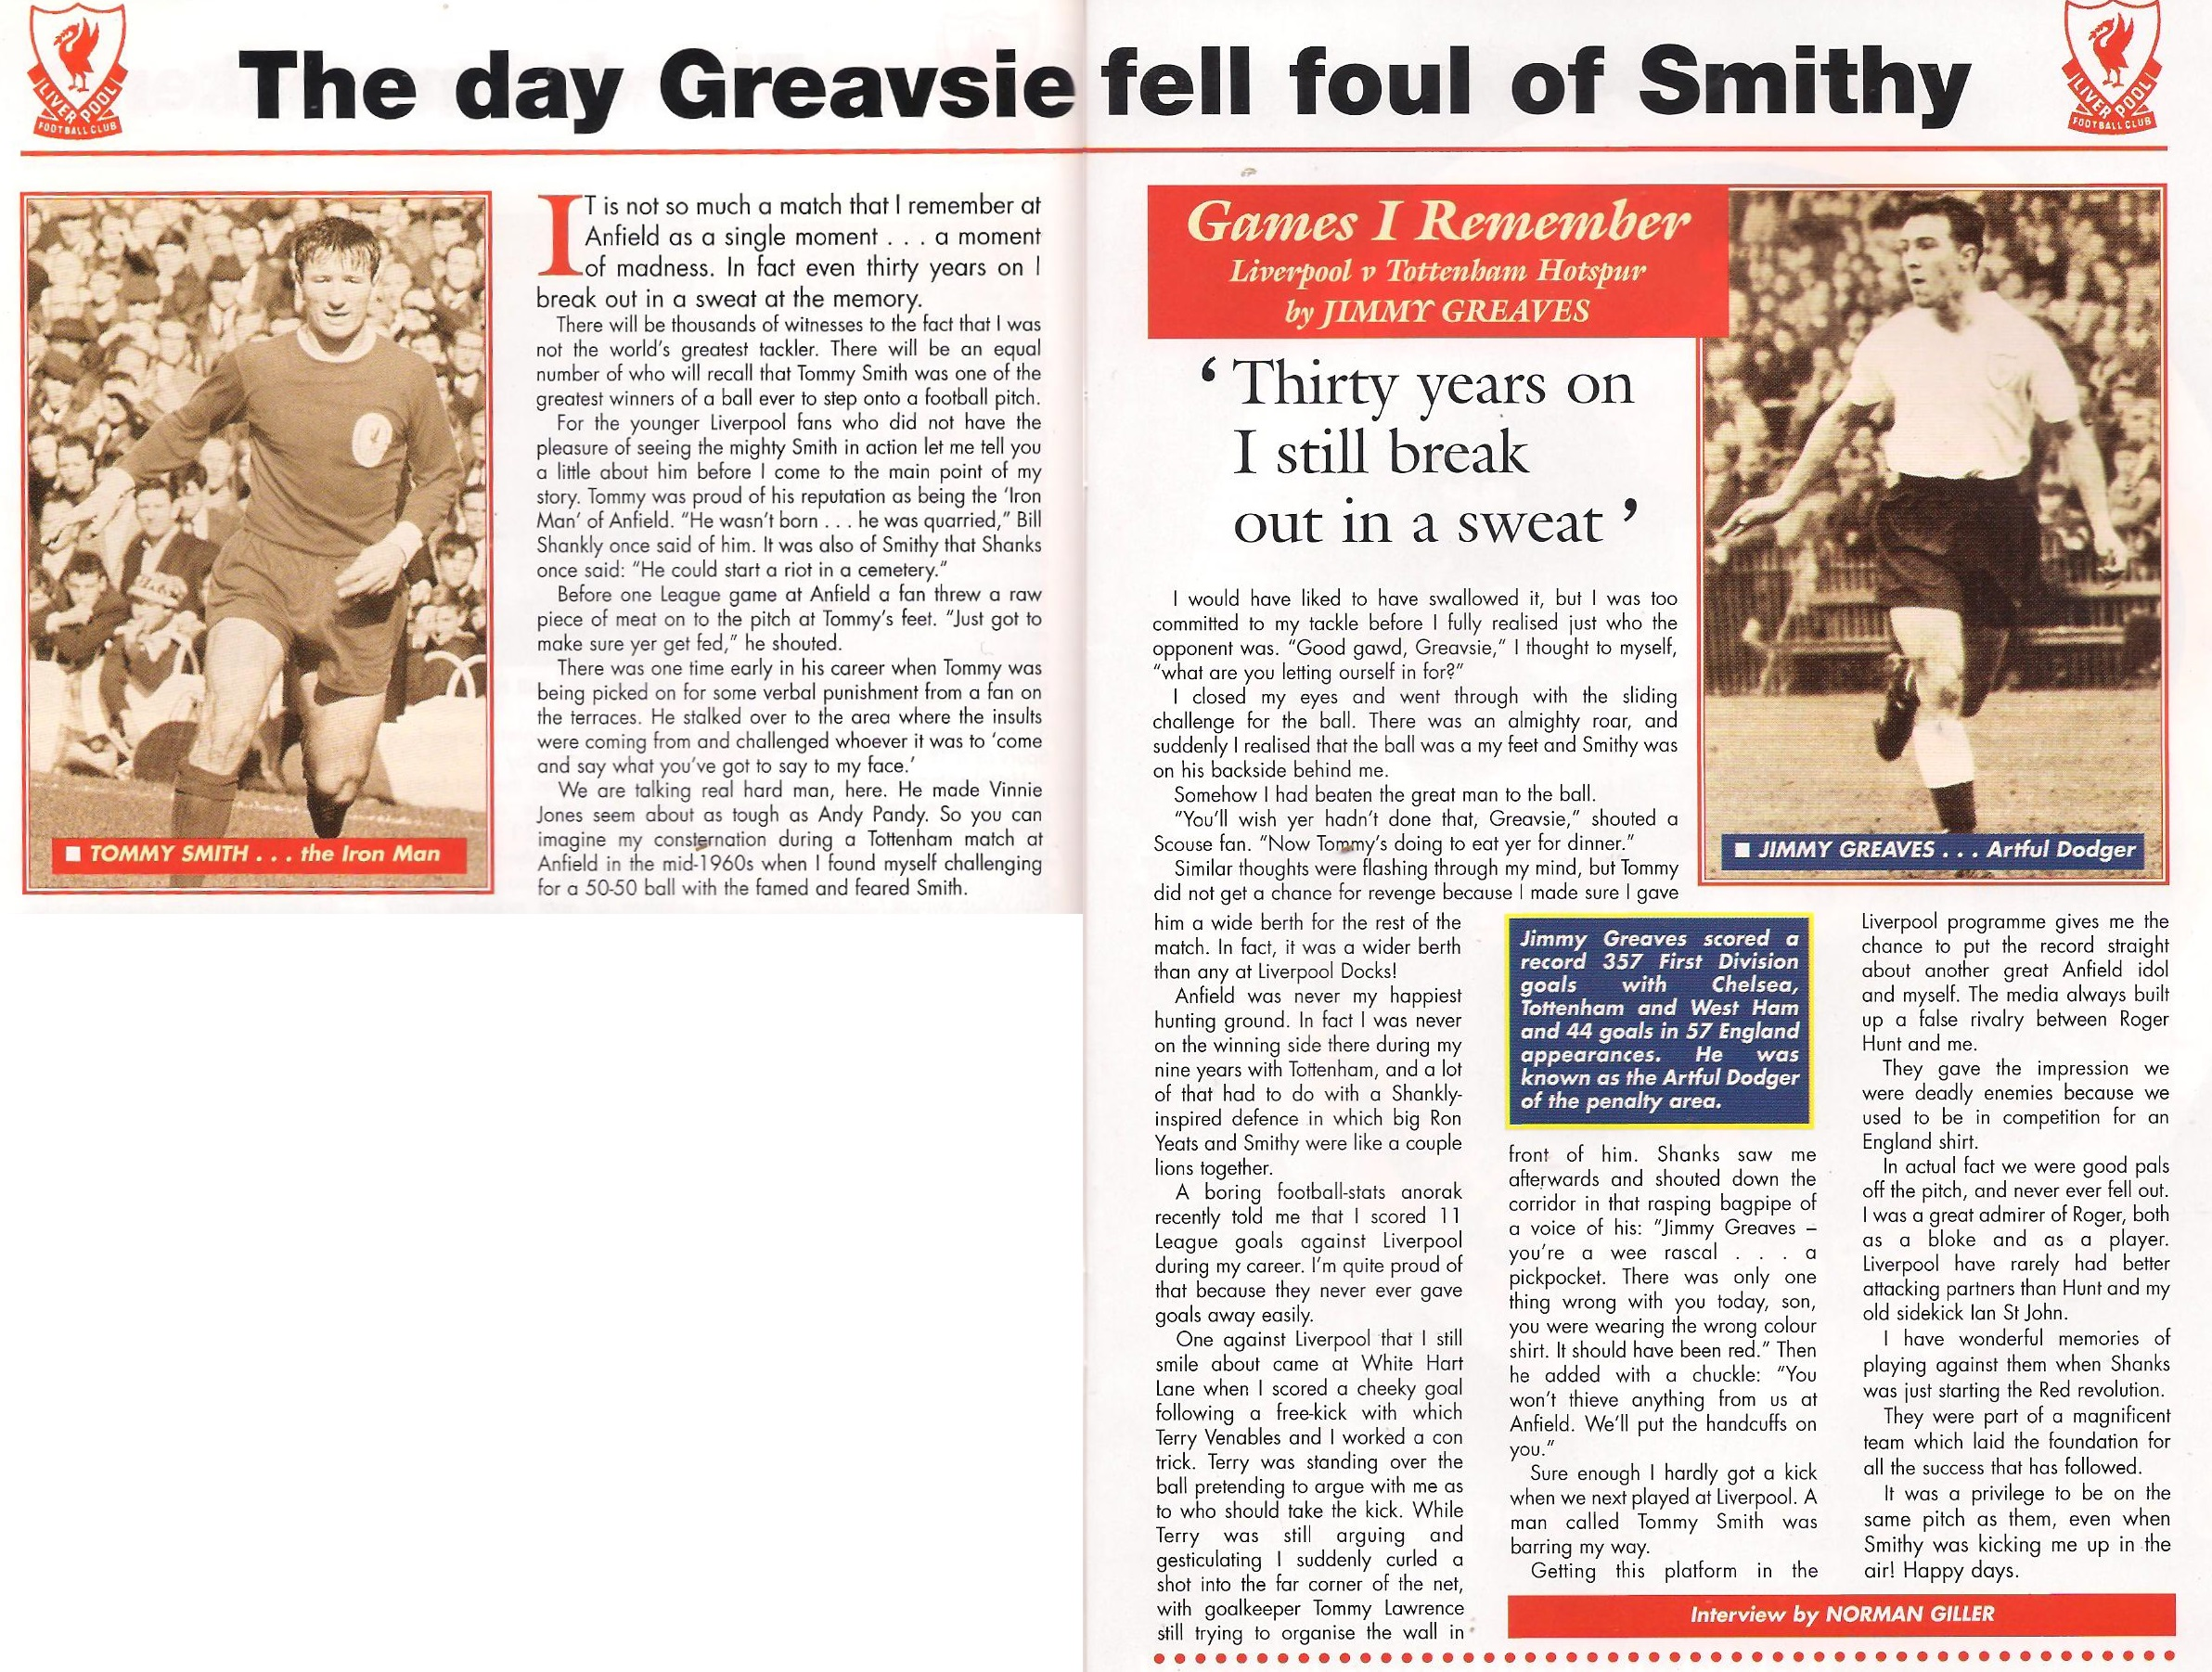 The day Greavsie fell foul of Smithy